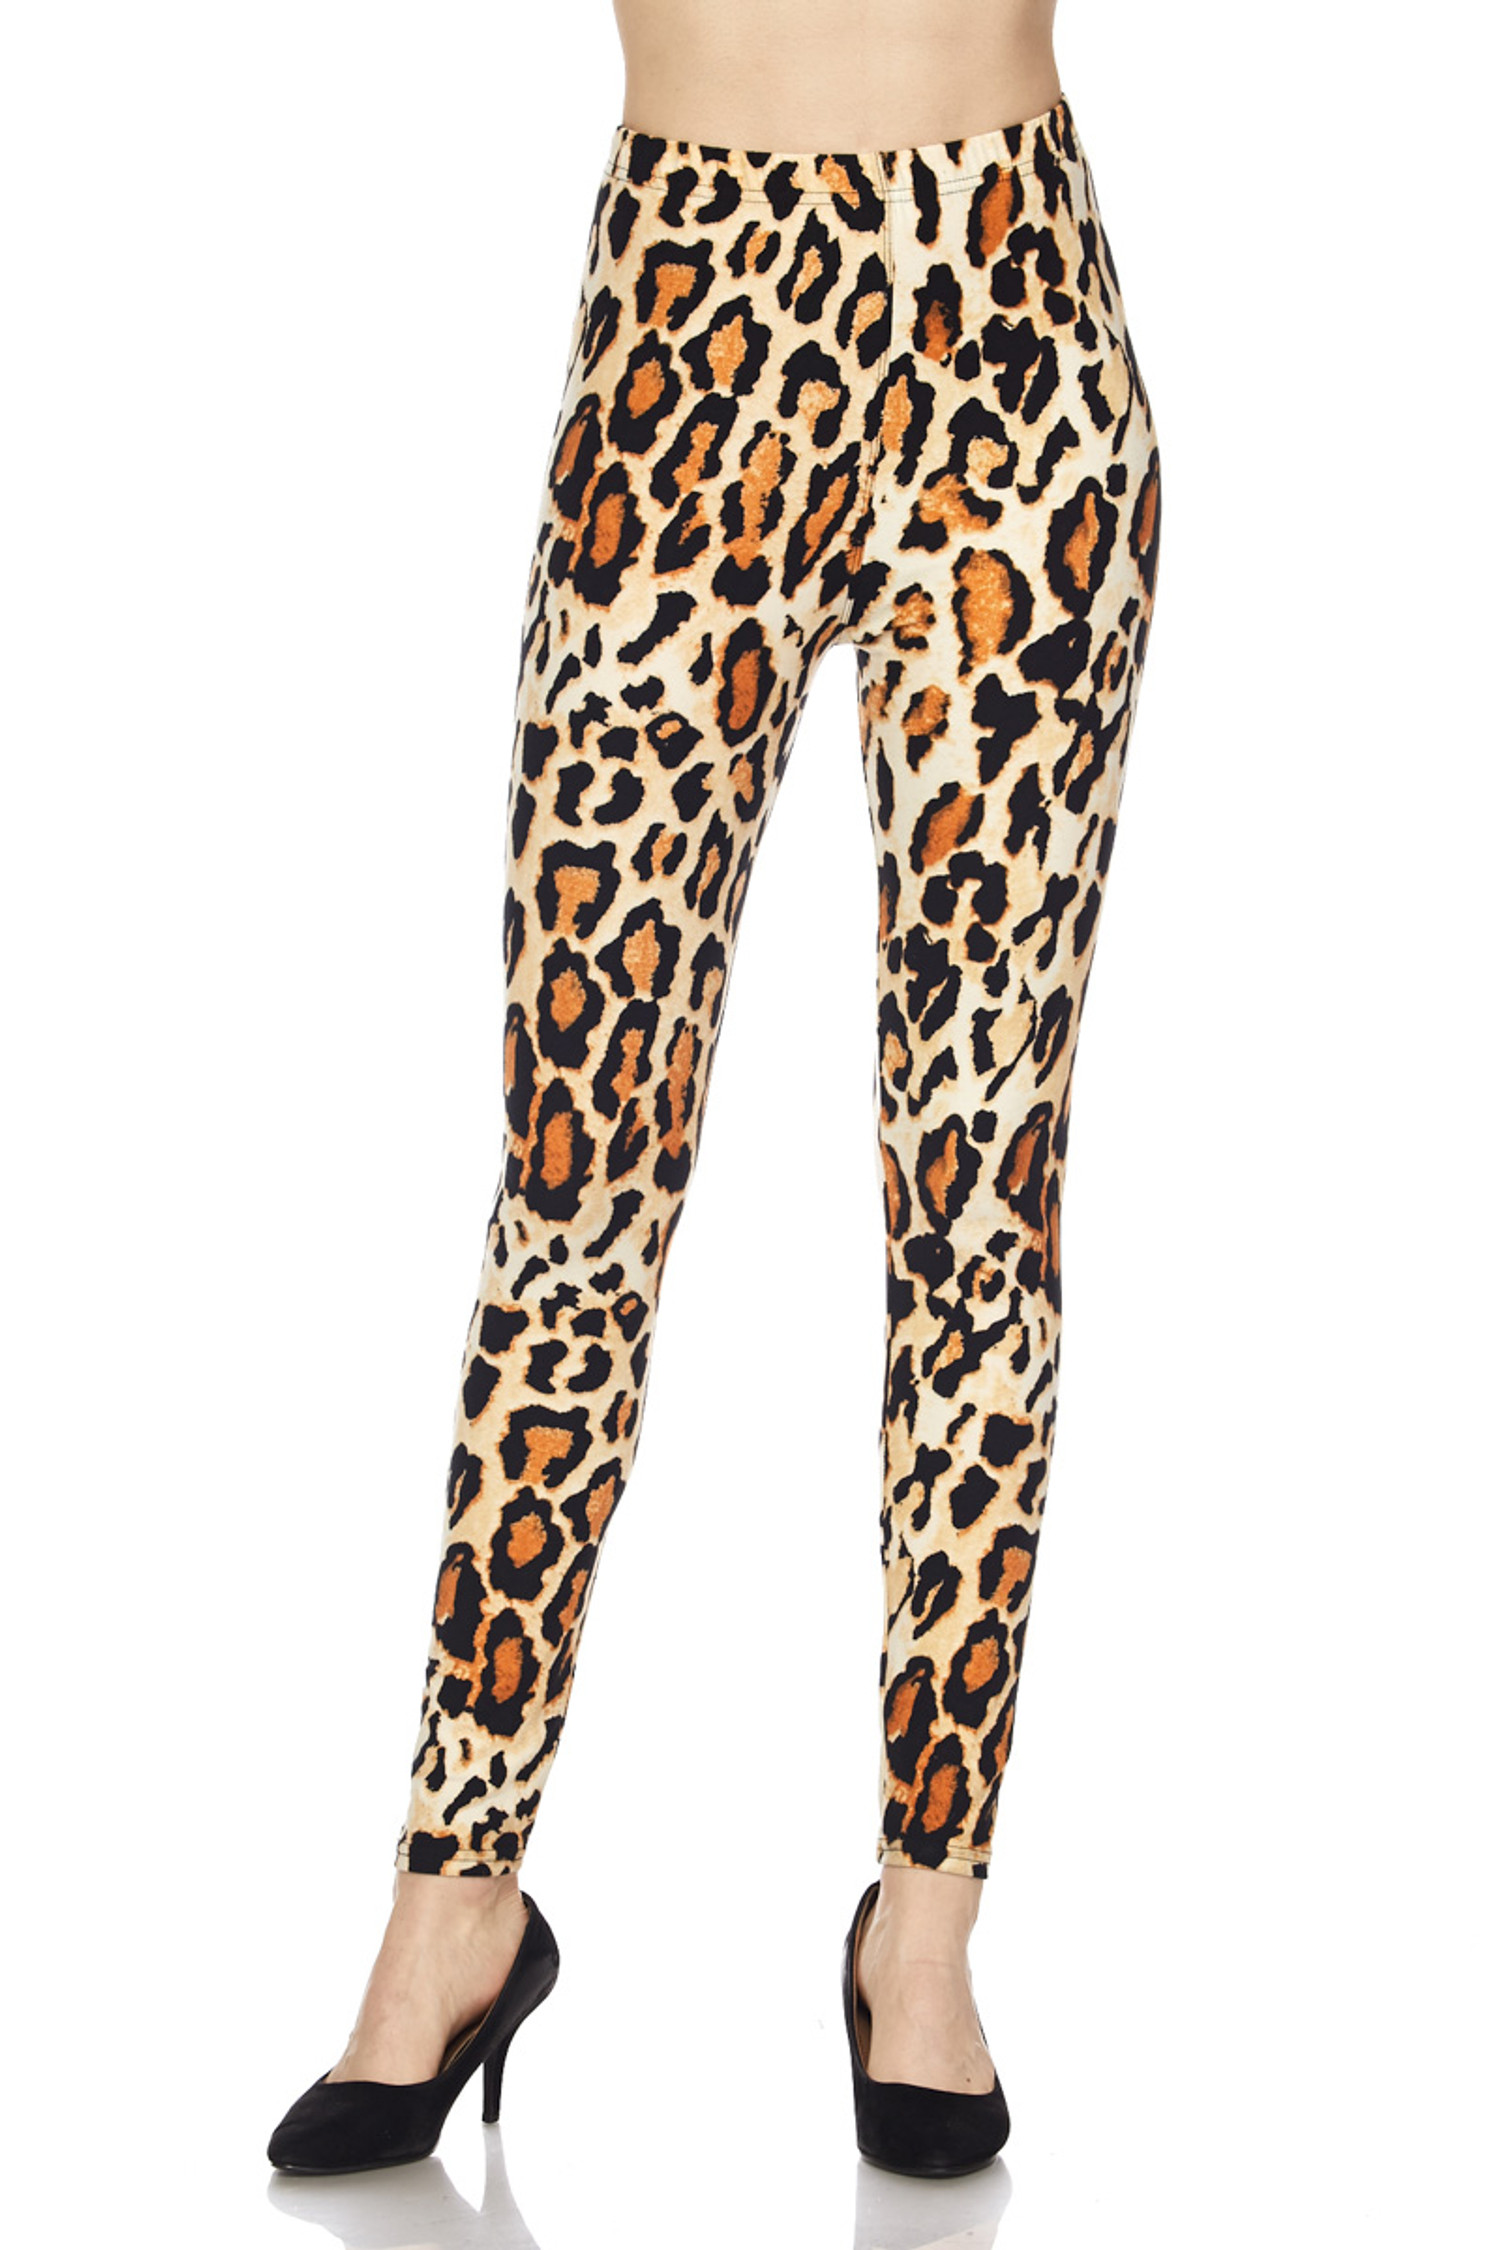 BrushedBrazilian Leopard Plus Size Leggings - 3X-5X